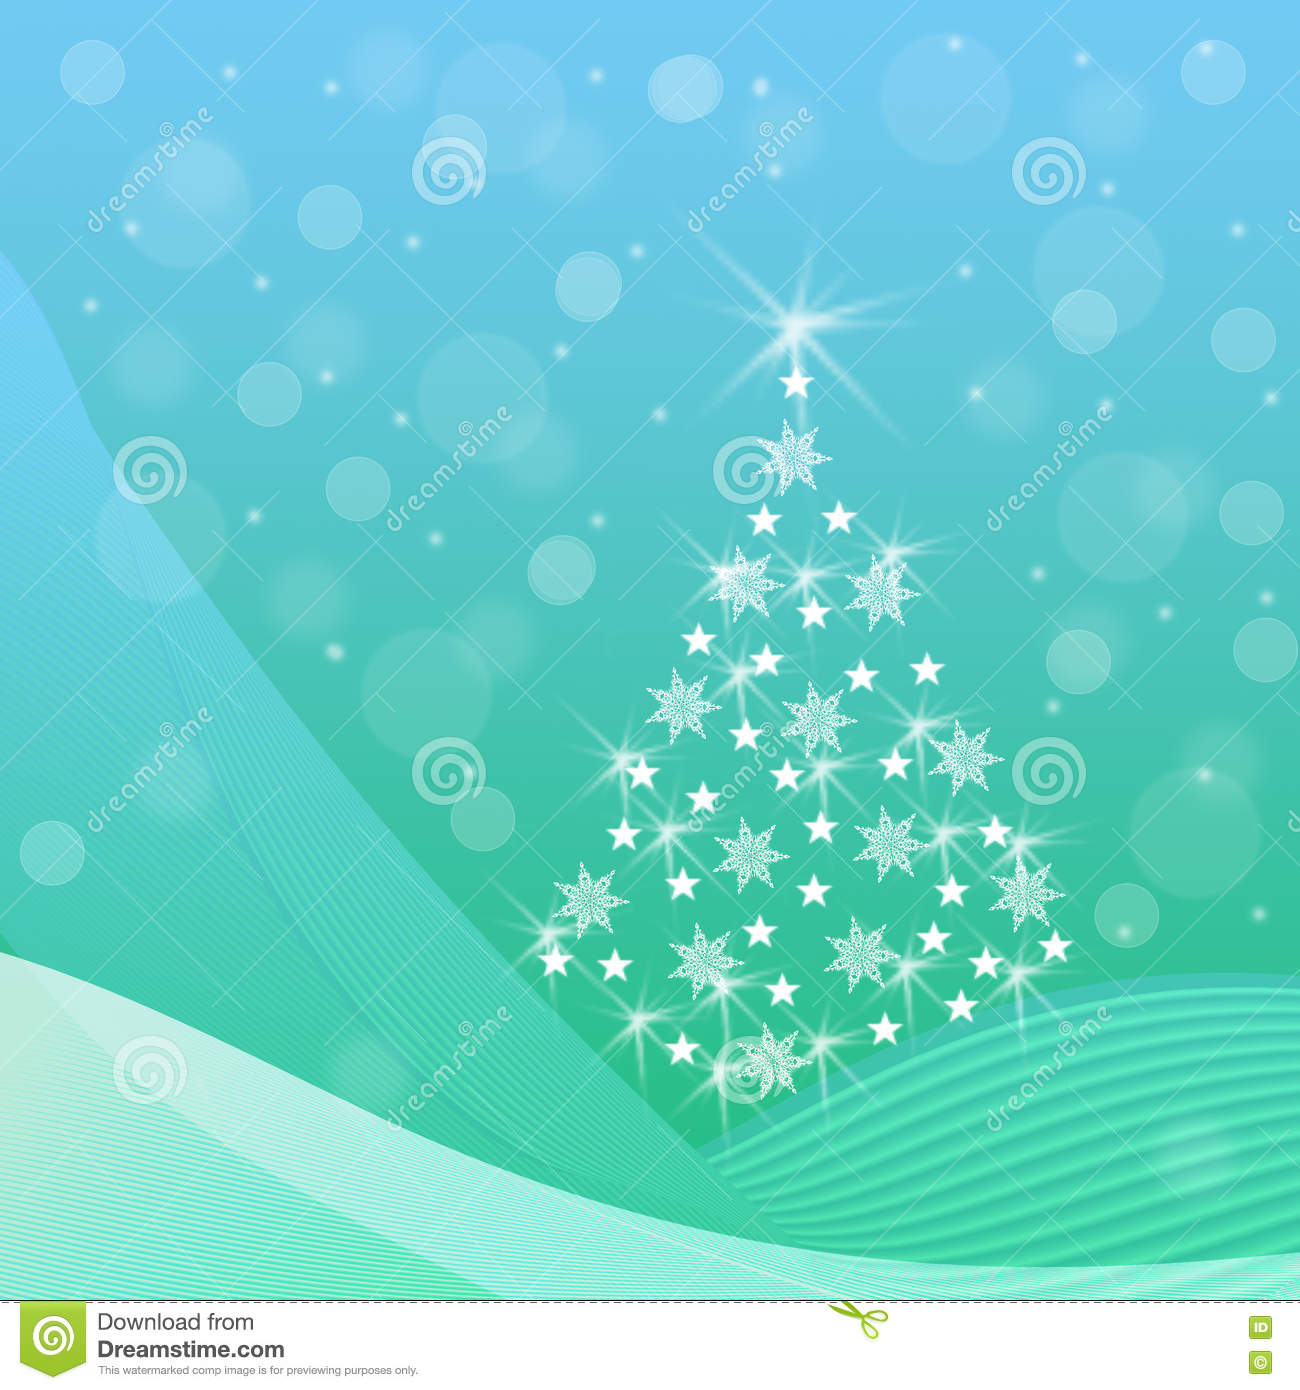 Blue and green Christmas background with fir tree